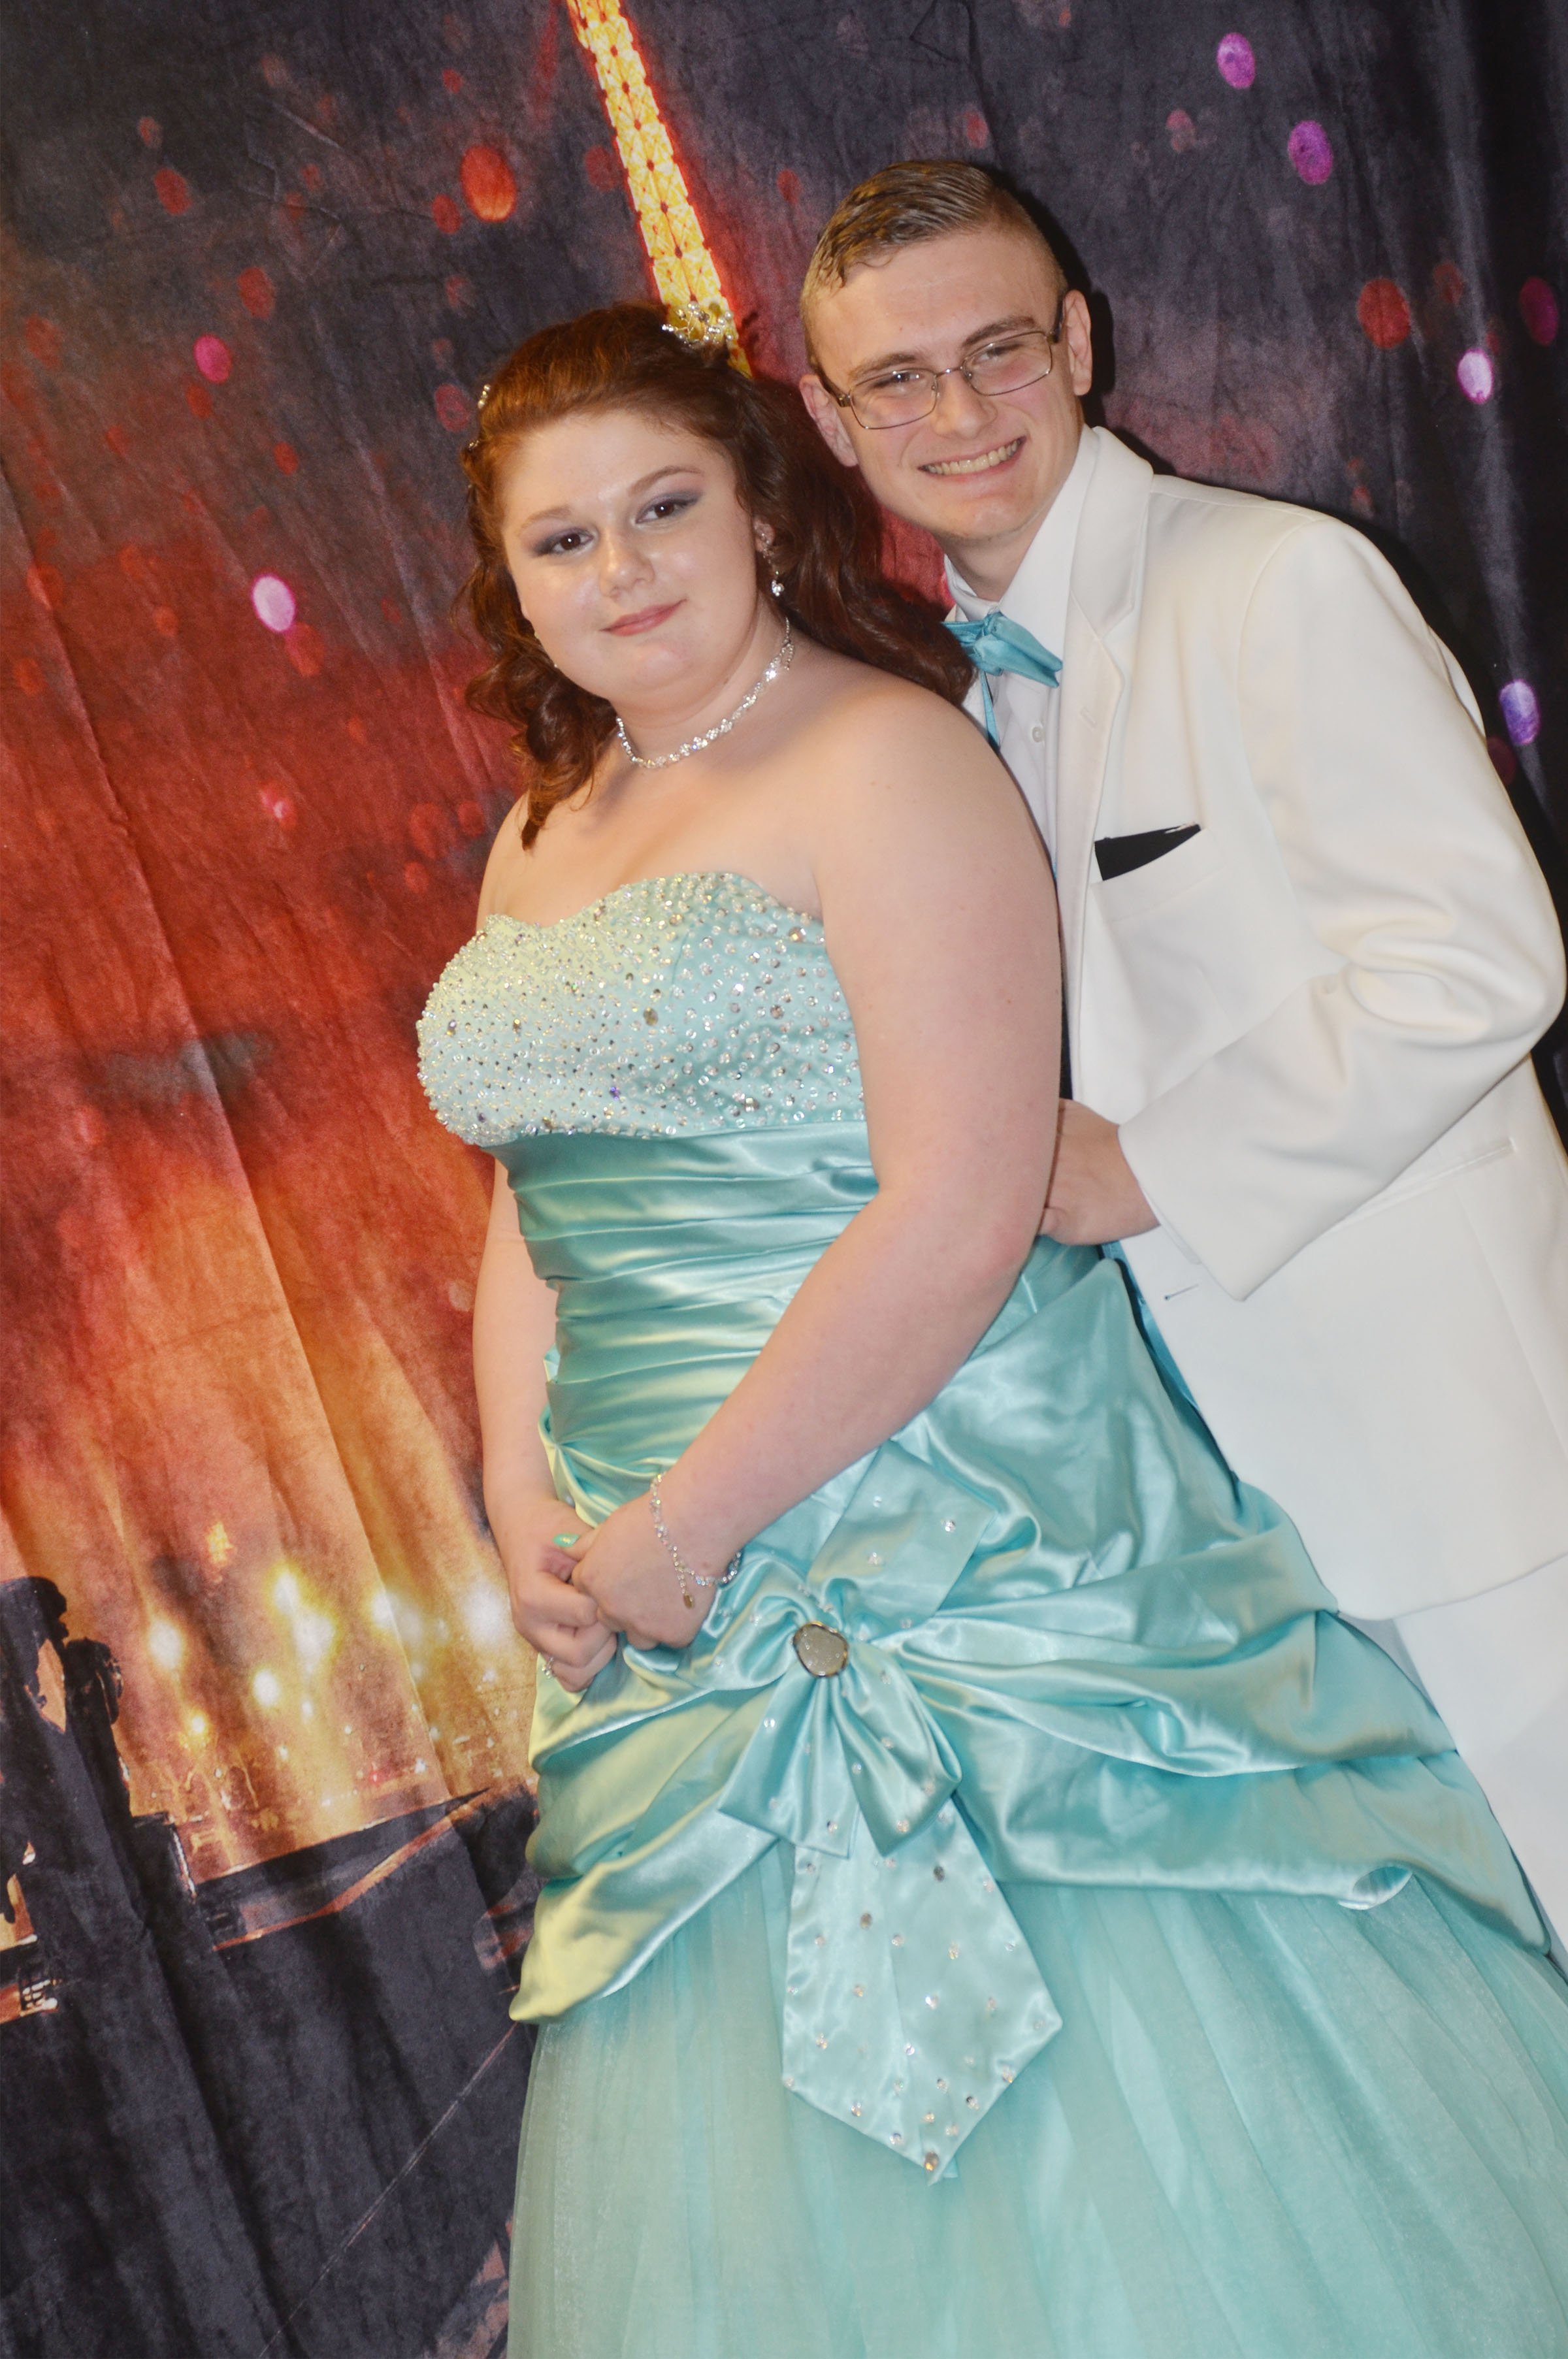 CHS senior Ben Rafferty poses for a photo with his date, freshman Rose Jefferson.